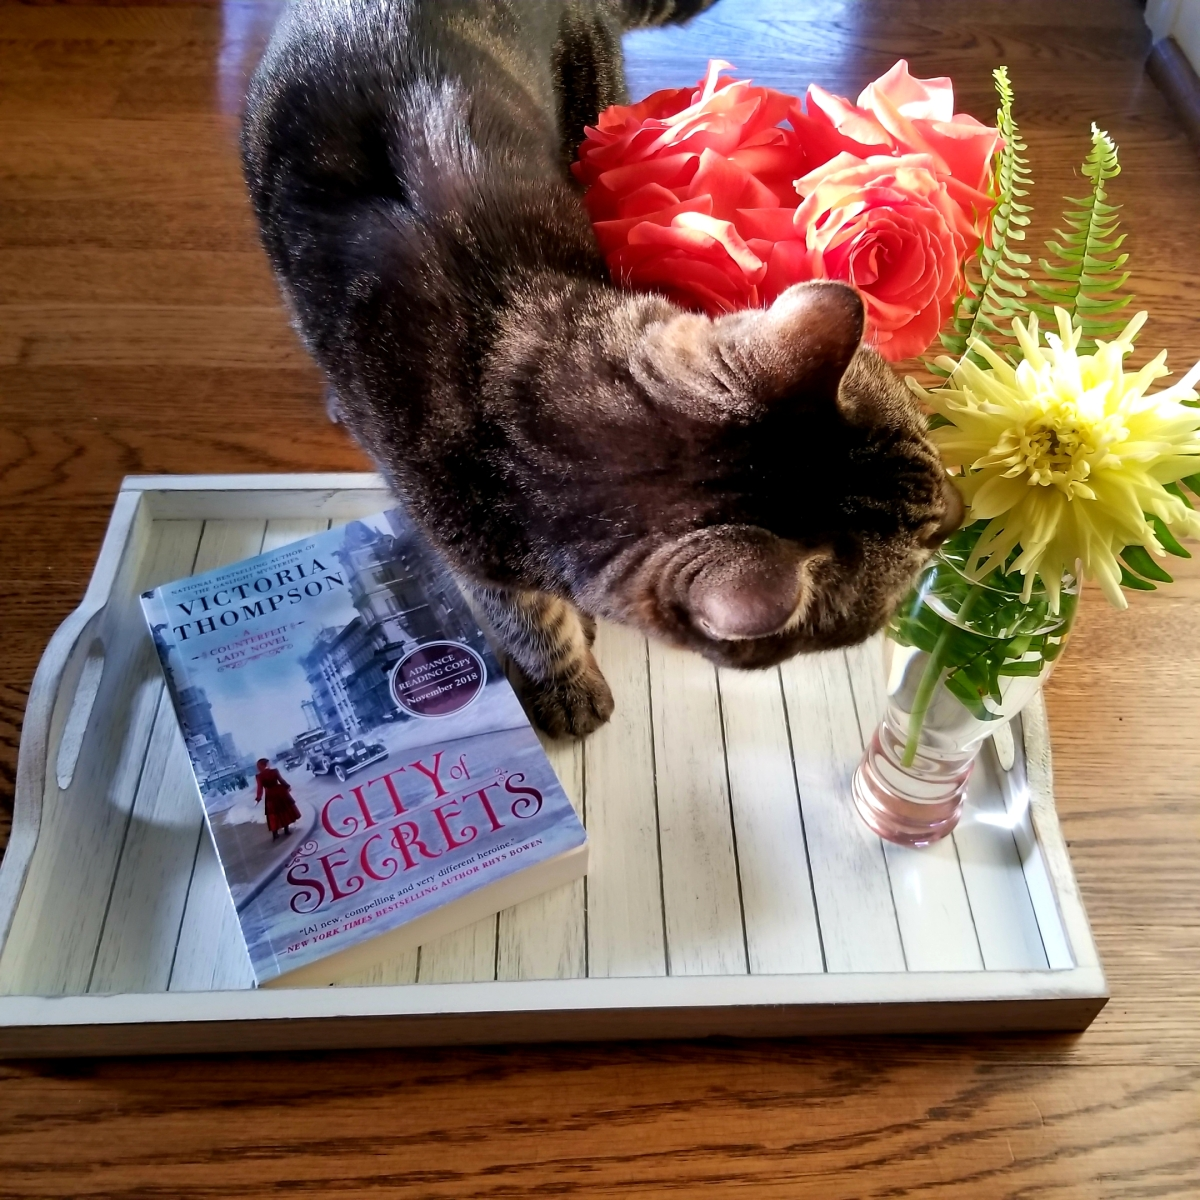 City of Secrets by Victoria Thompson #bookreview #tarheelreader #thrcitysecrets @gaslightvt @berkleypub #cityofsecrets #6bookbestiescityofsecrets #6bookbestieapproved